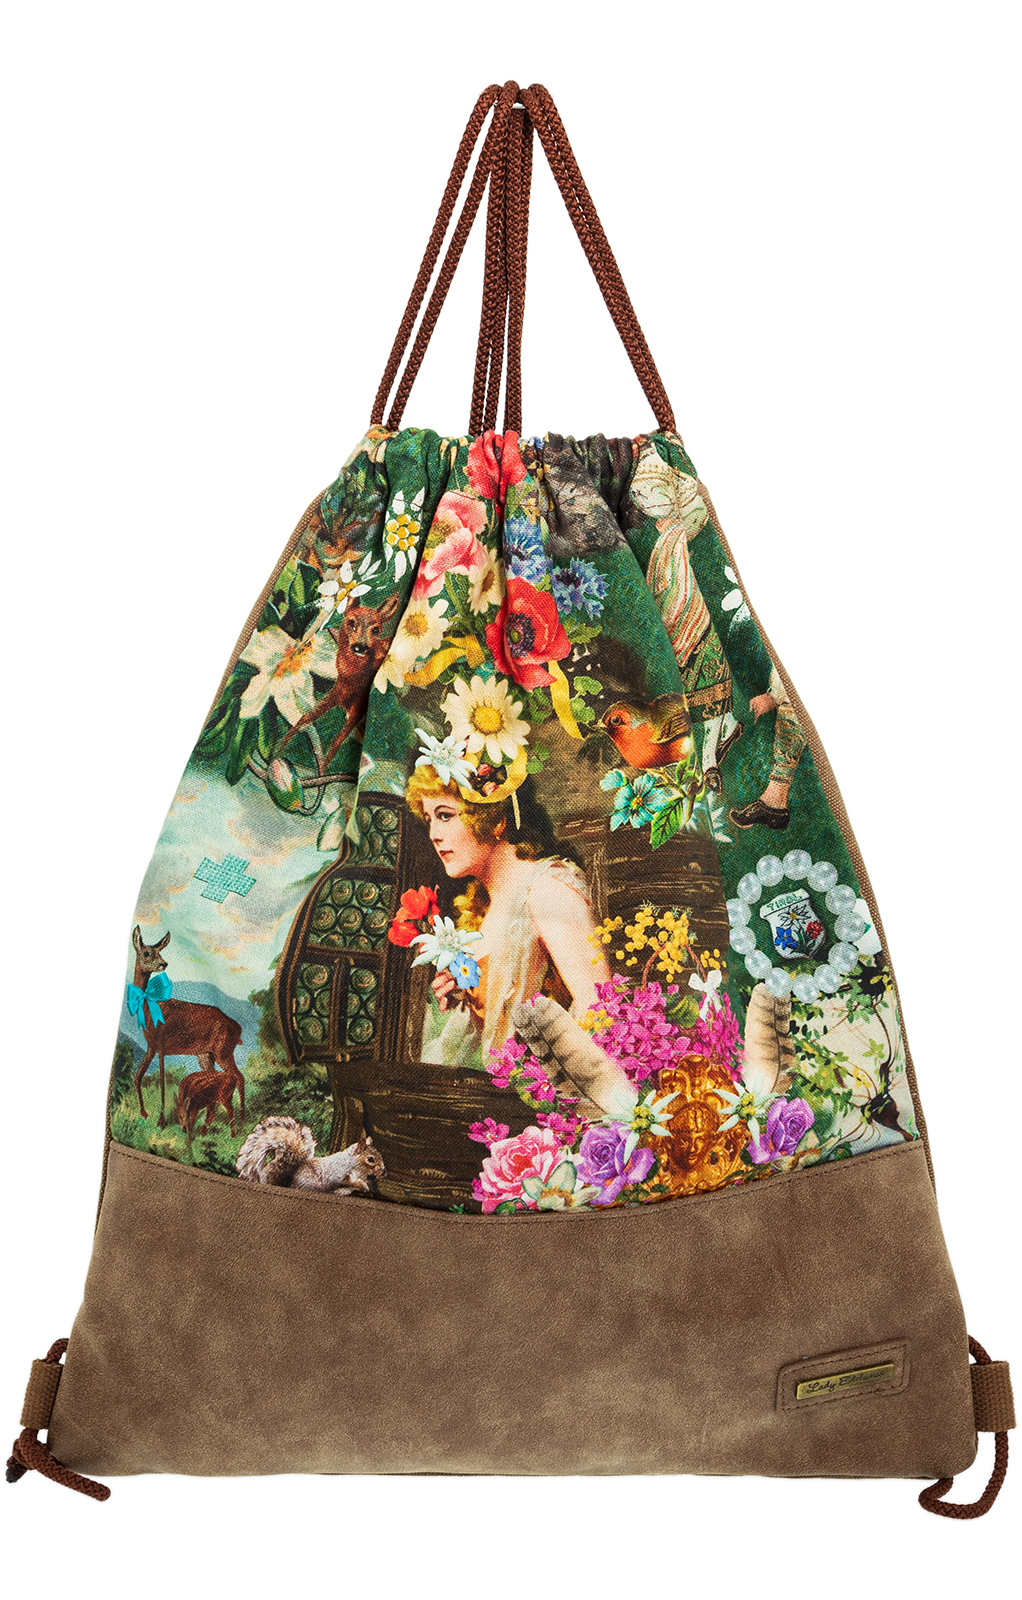 Traditional bag 11501 Uni - Nostalgie von Lady Edelweiss